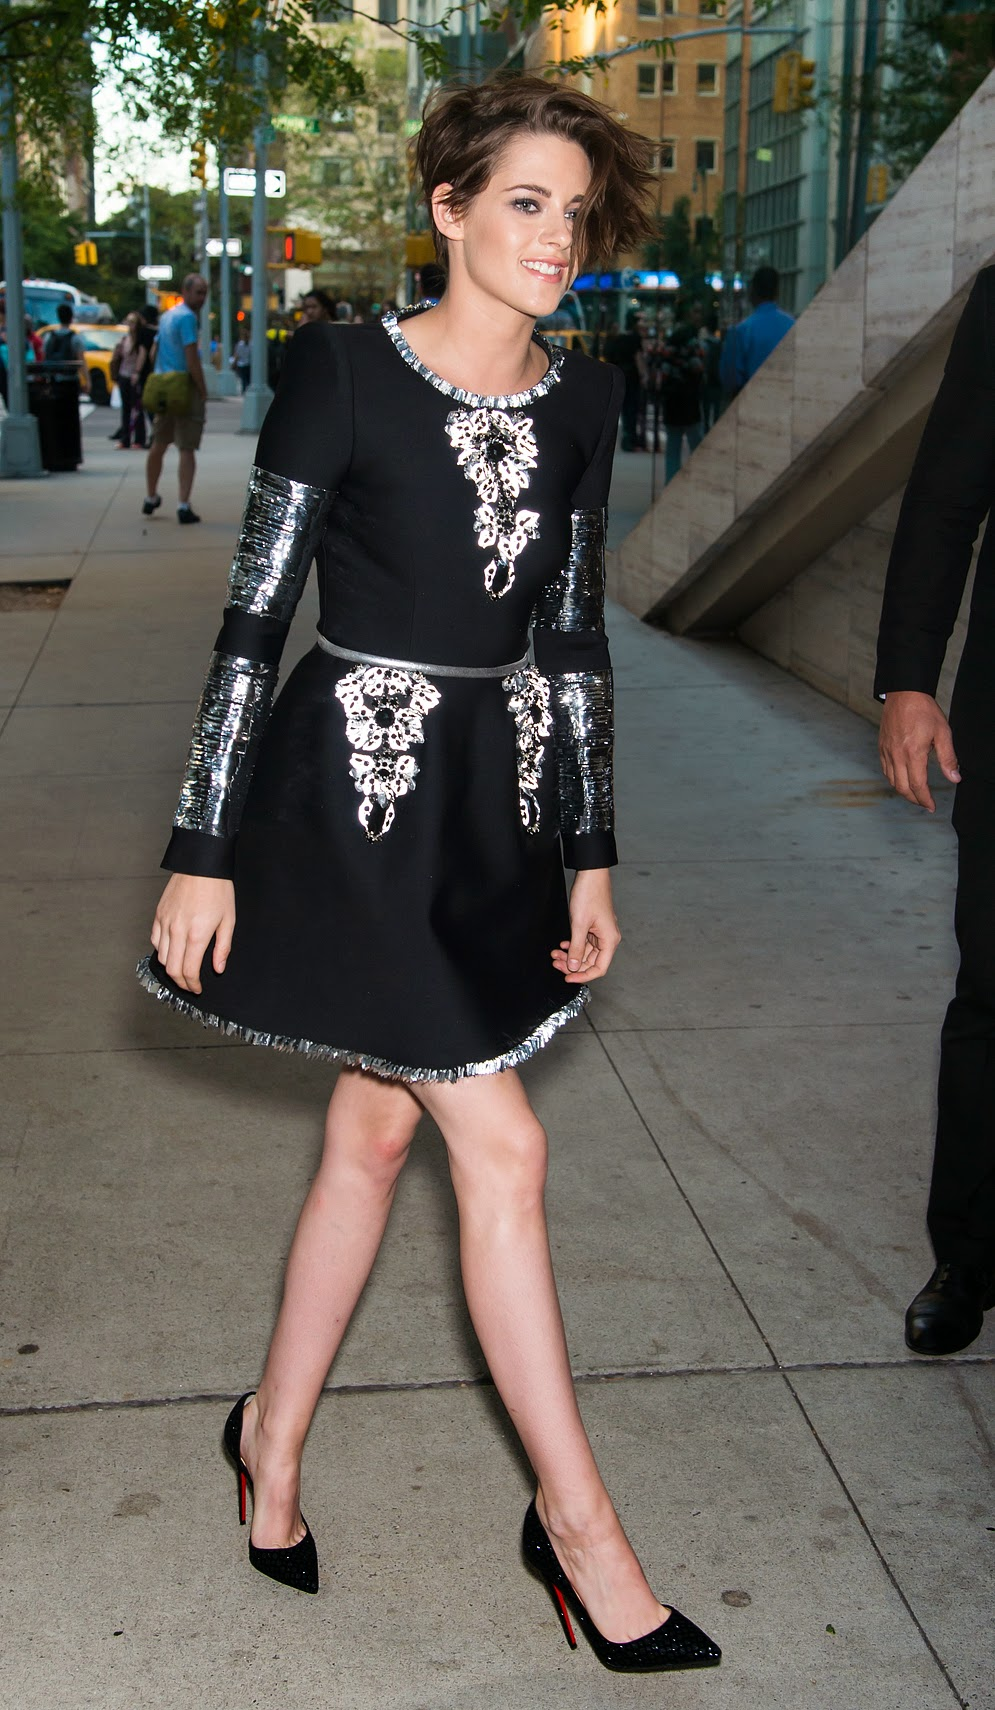 The Toe Cleavage Blog Kristen Stewart Day 2